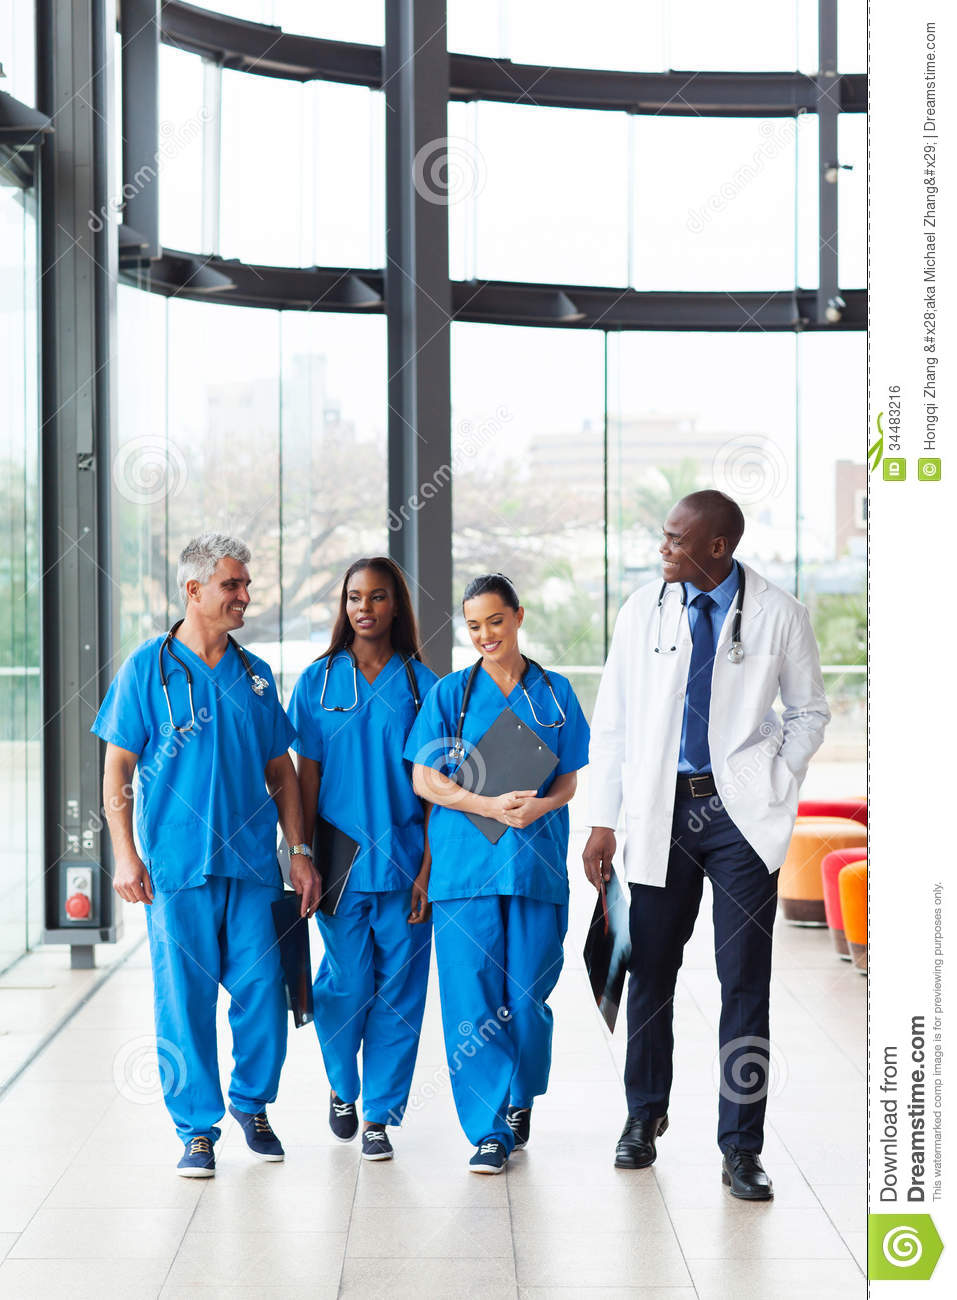 Health Care Workers Walking Royalty Free Stock Image - Image: 34483216